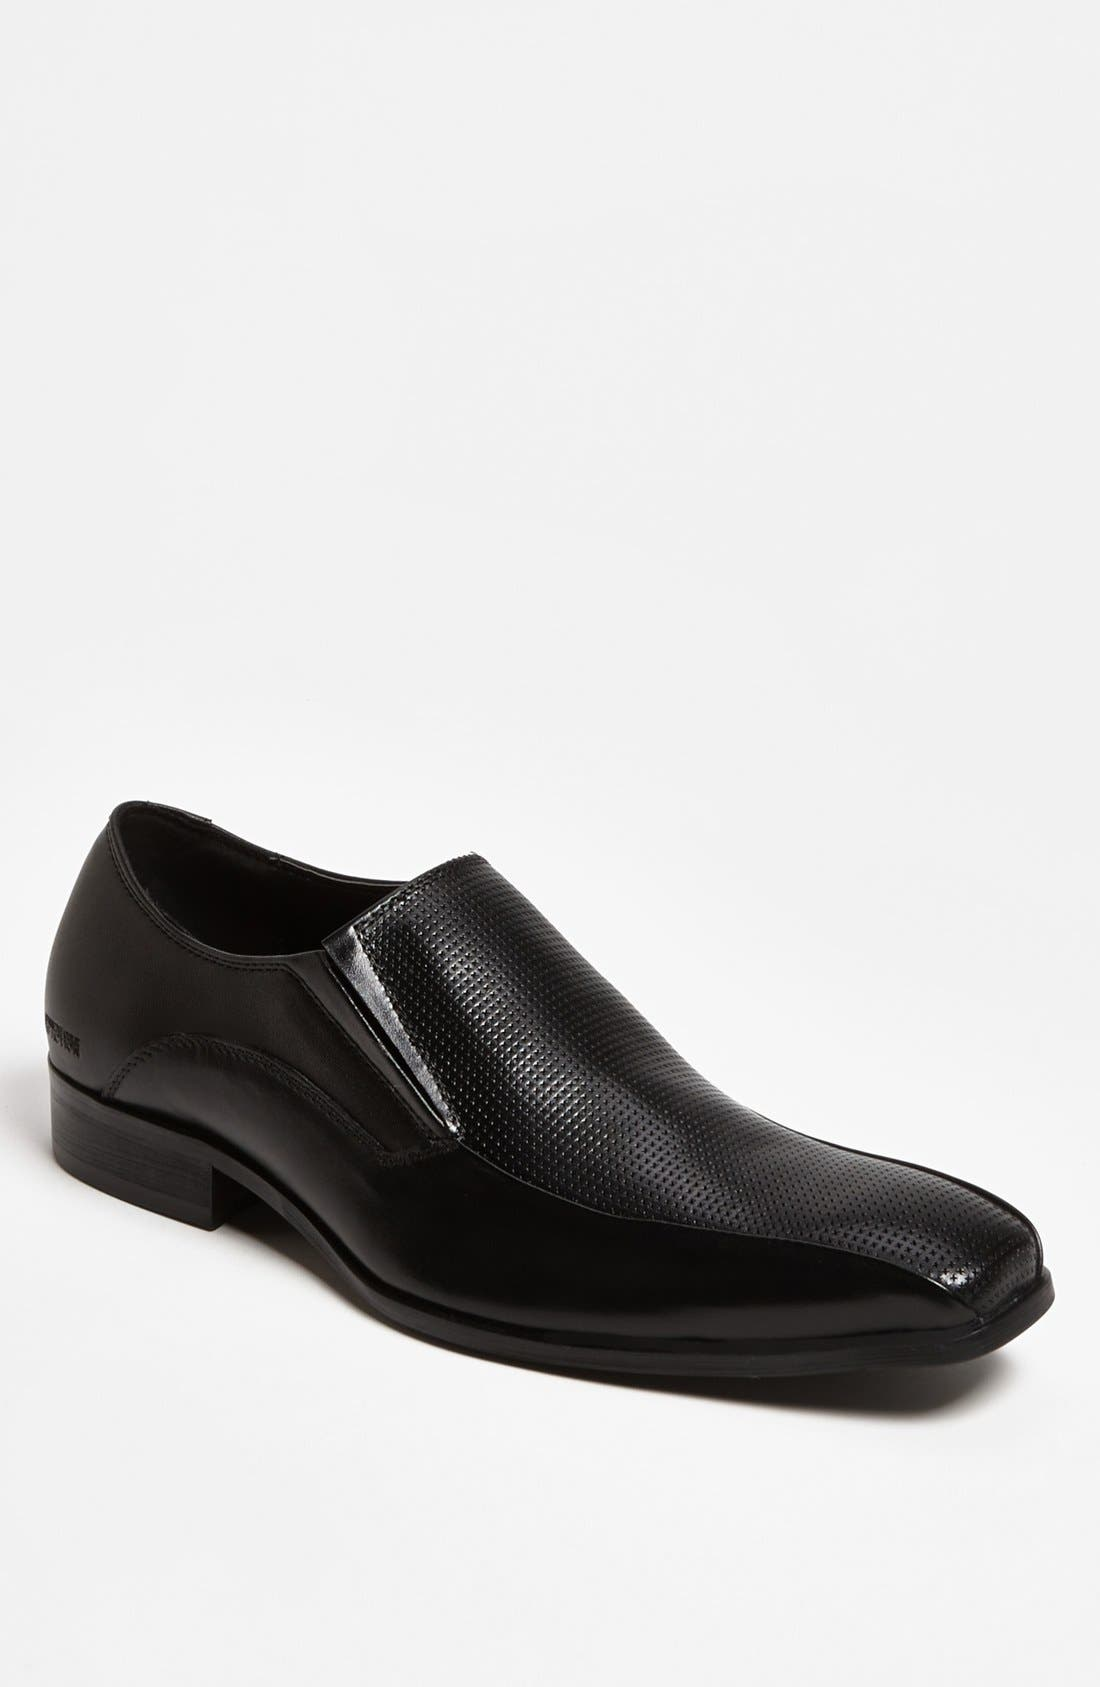 Main Image - Kenneth Cole Reaction 'The Jig is Up' Venetian Loafer